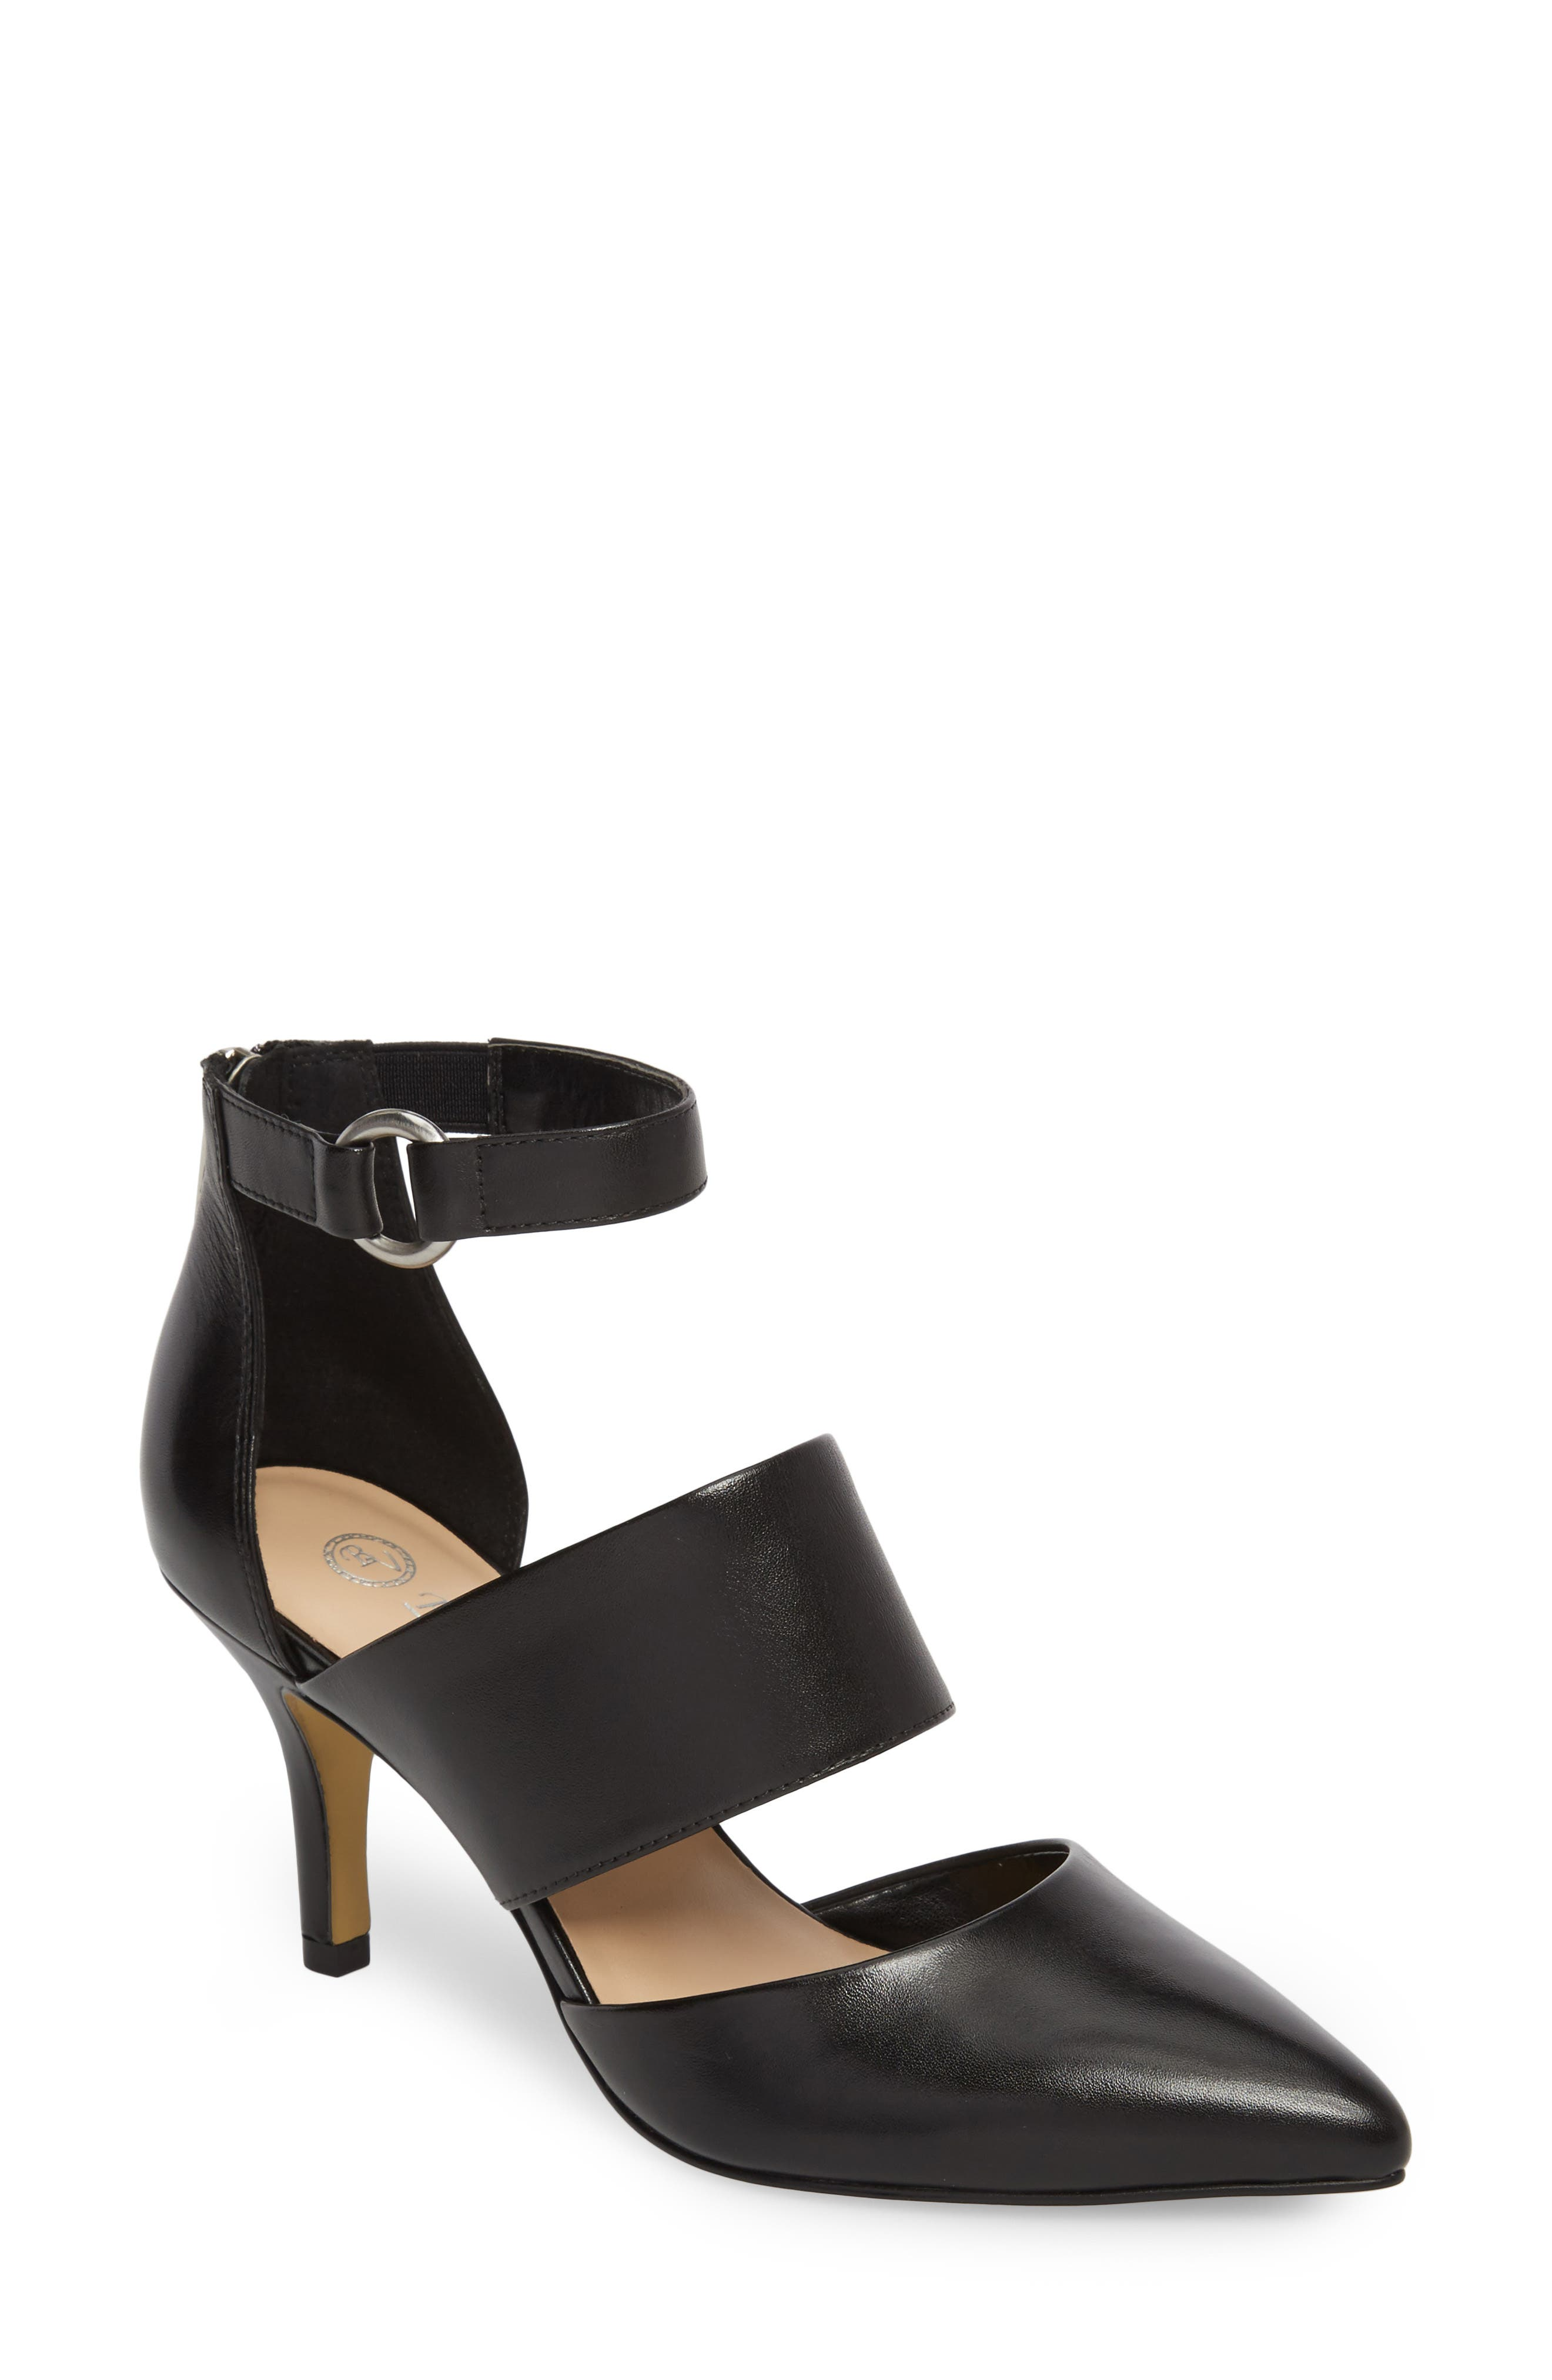 Diana Pump,                             Main thumbnail 1, color,                             Black Leather